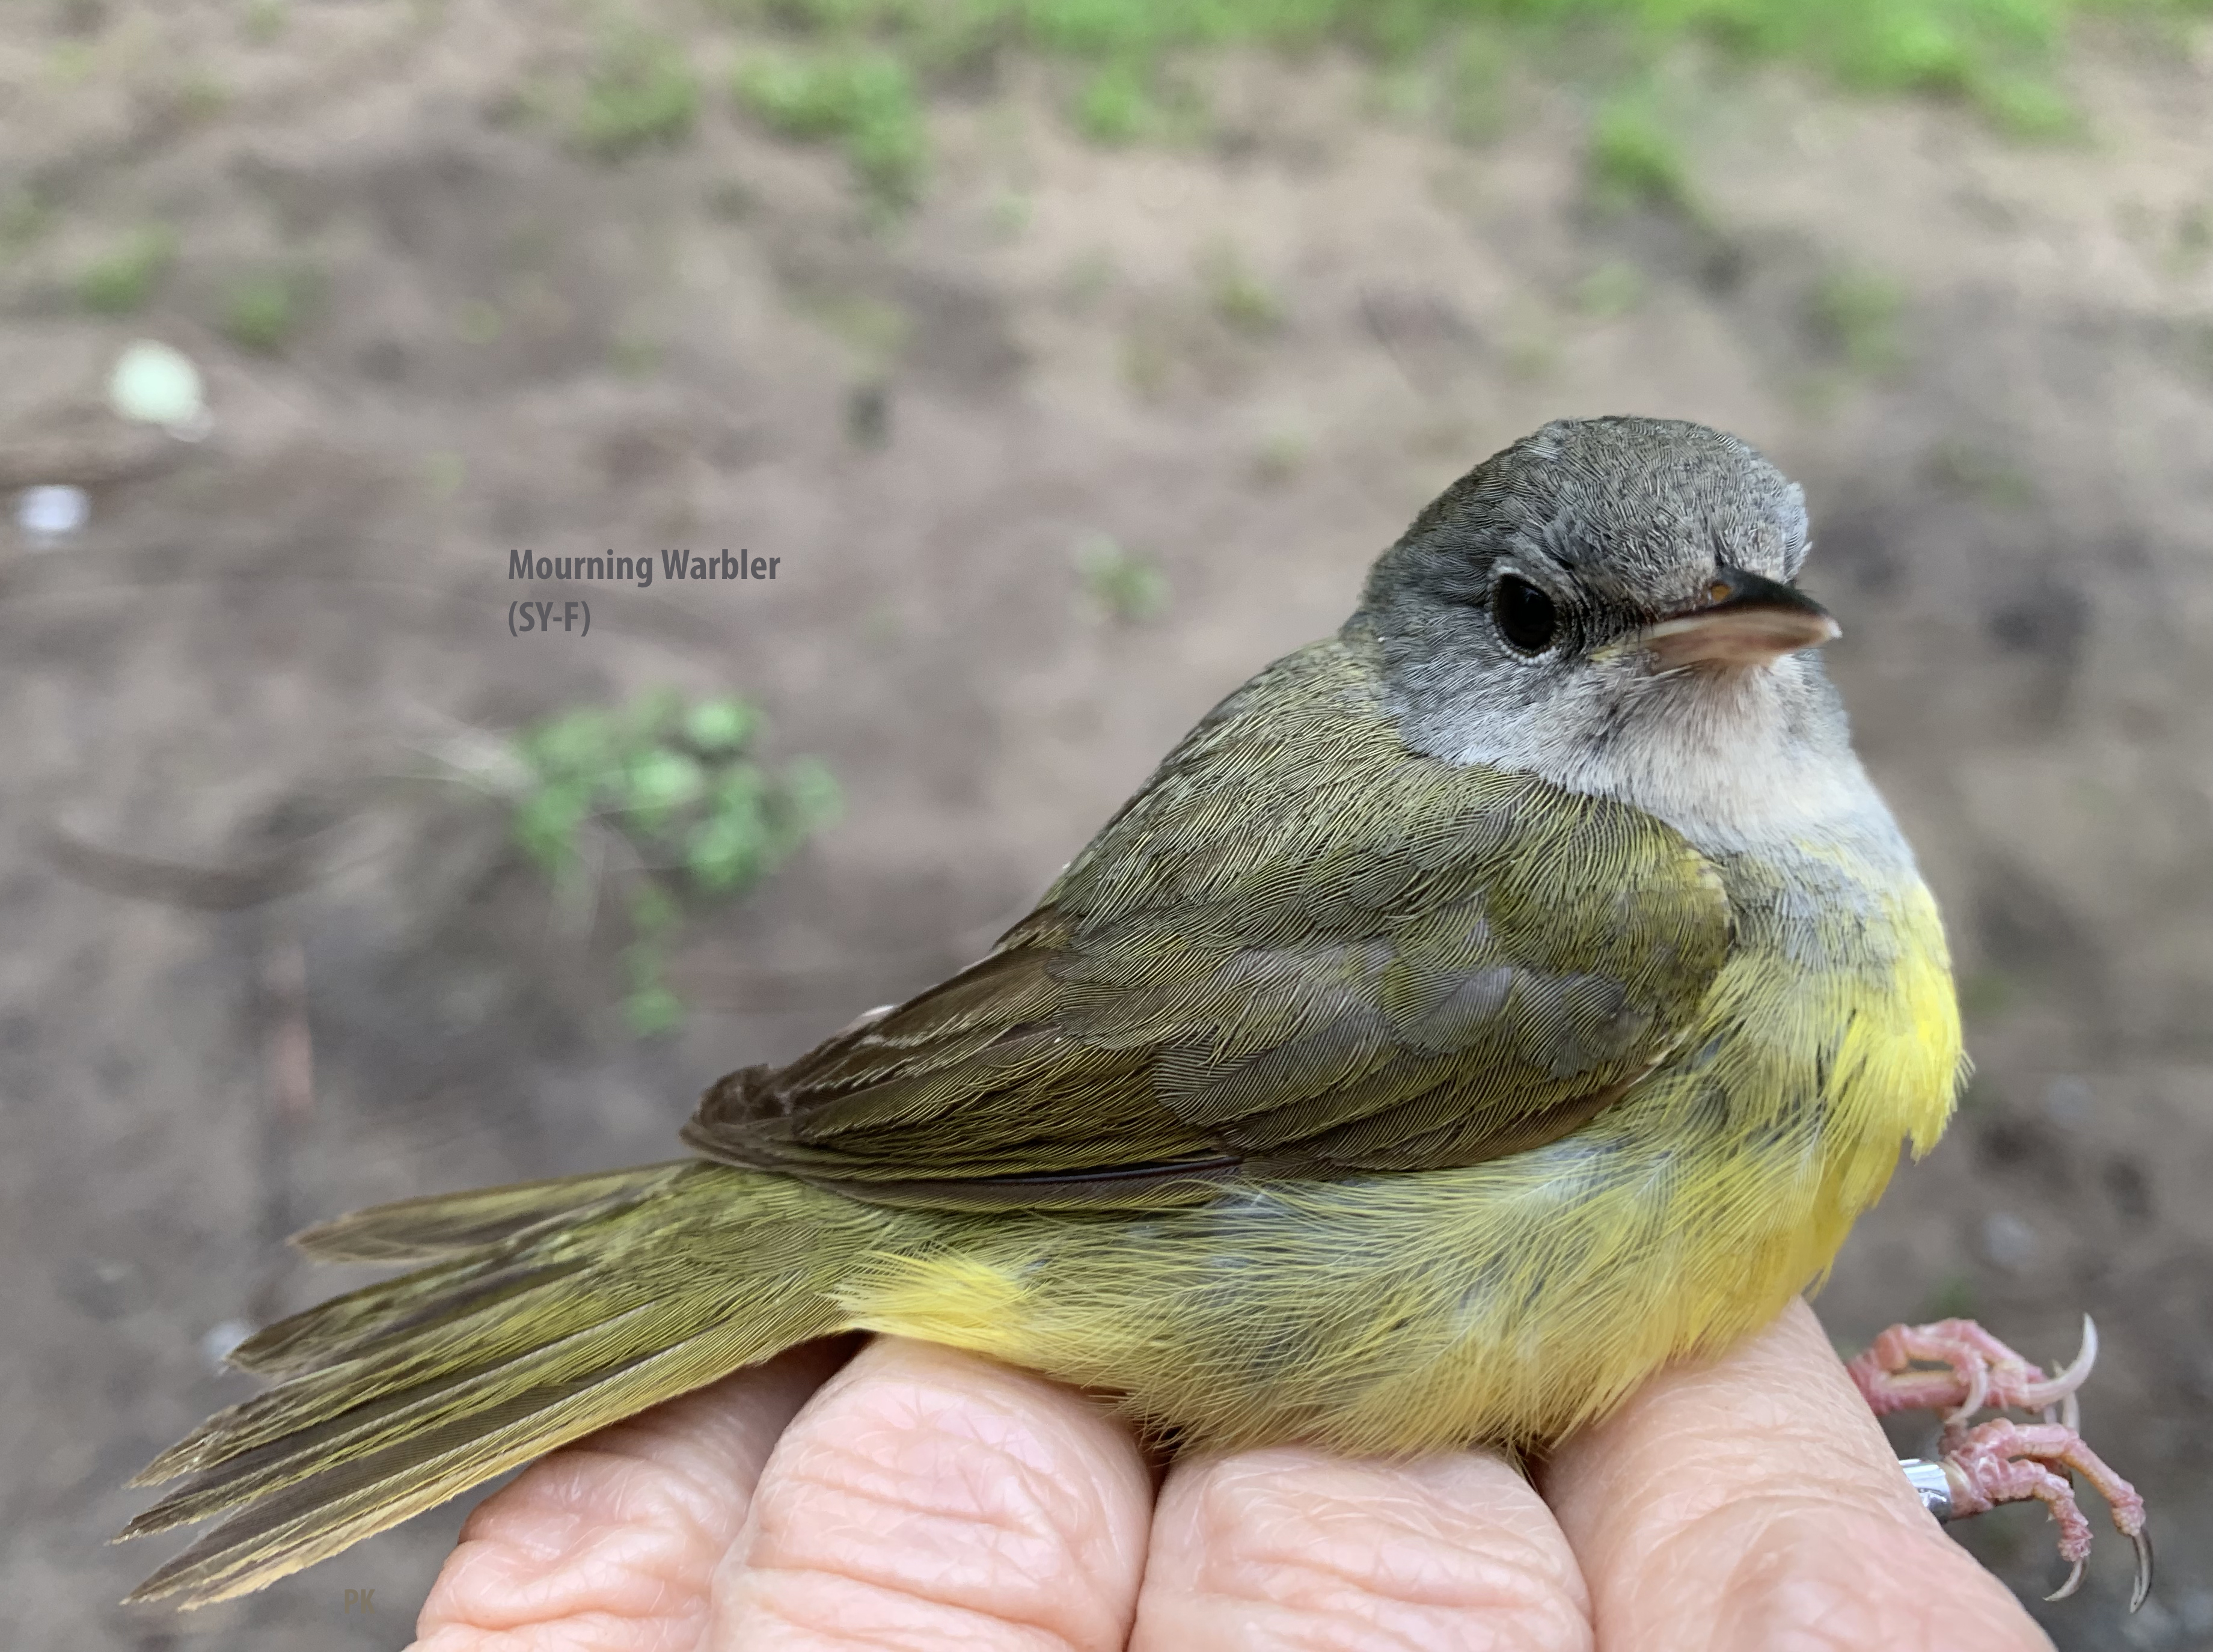 IMG_9227 Mourning Warbler-SY-F 3bo